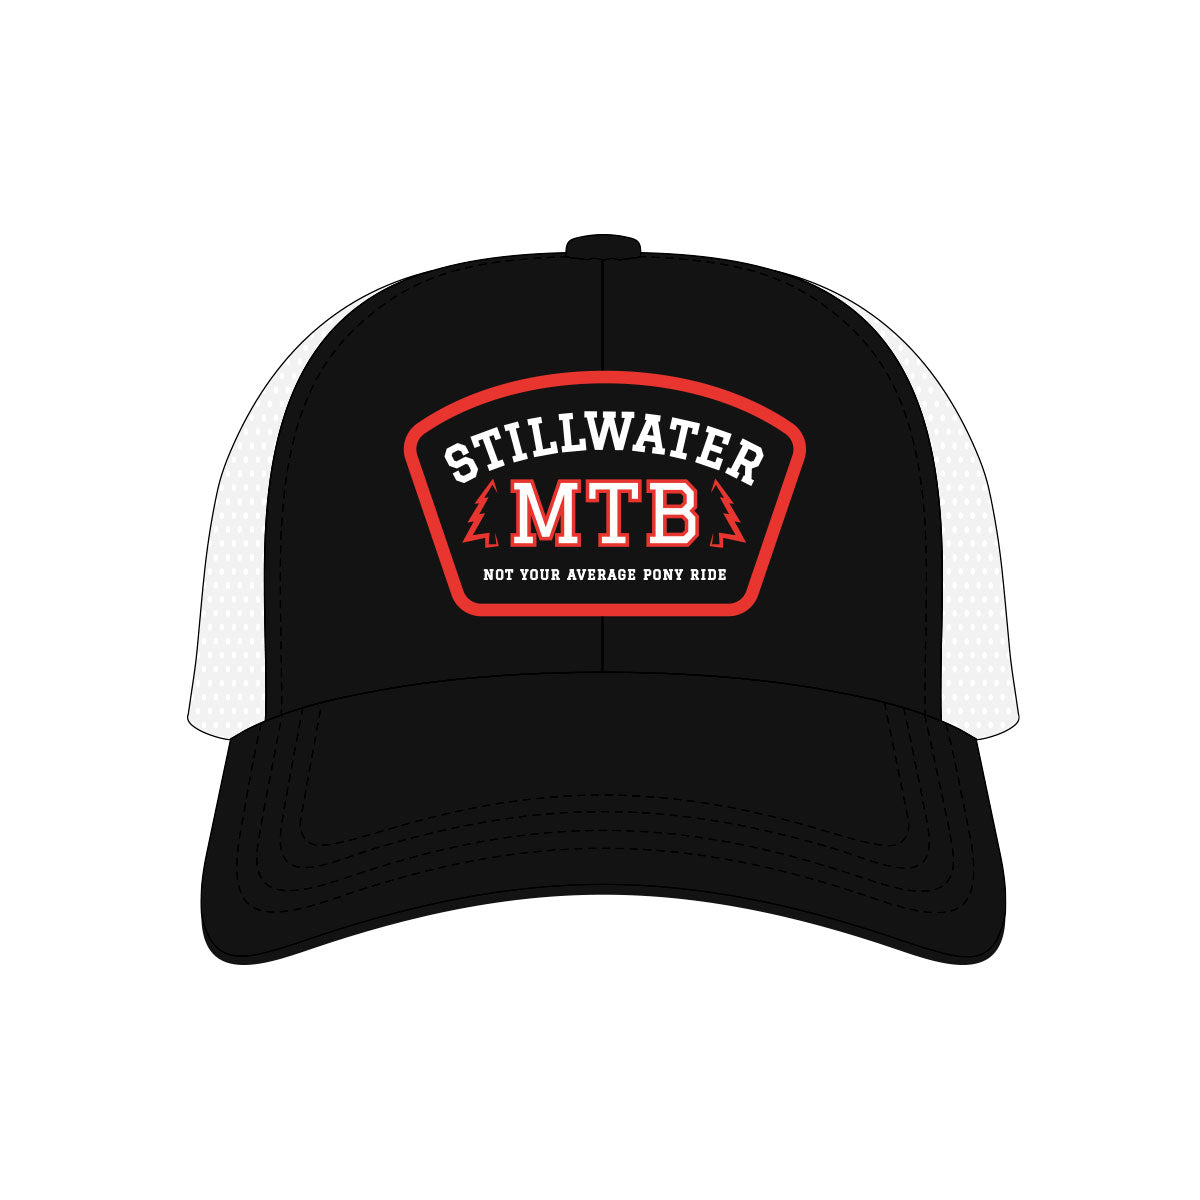 Stillwater MTB Trucker Hat